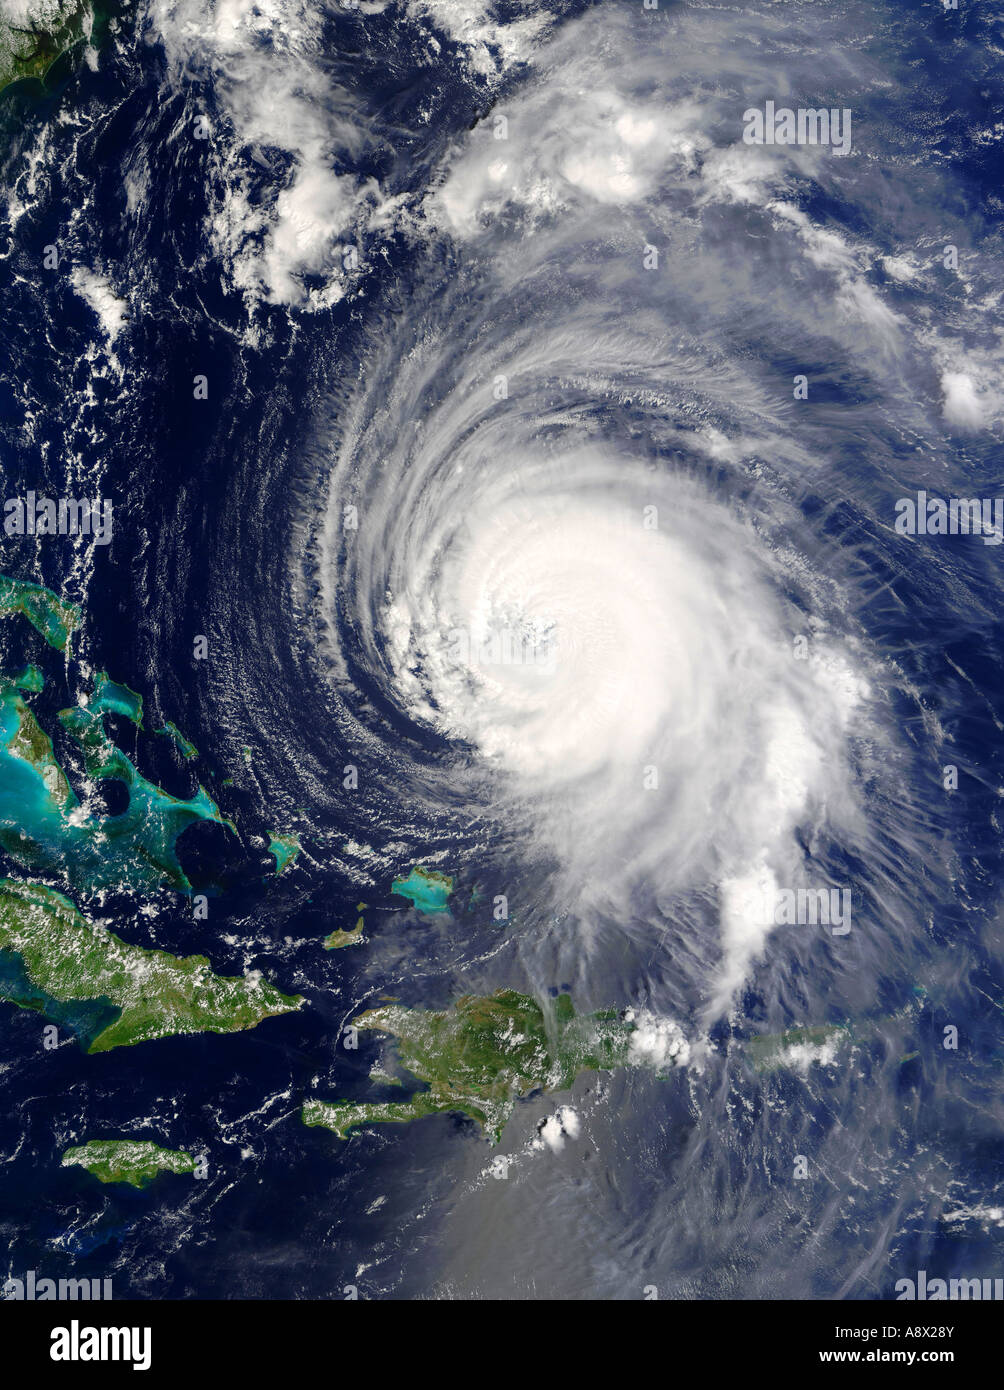 Hurricane Isabel east of the Bahamas viewed from space - Stock Image